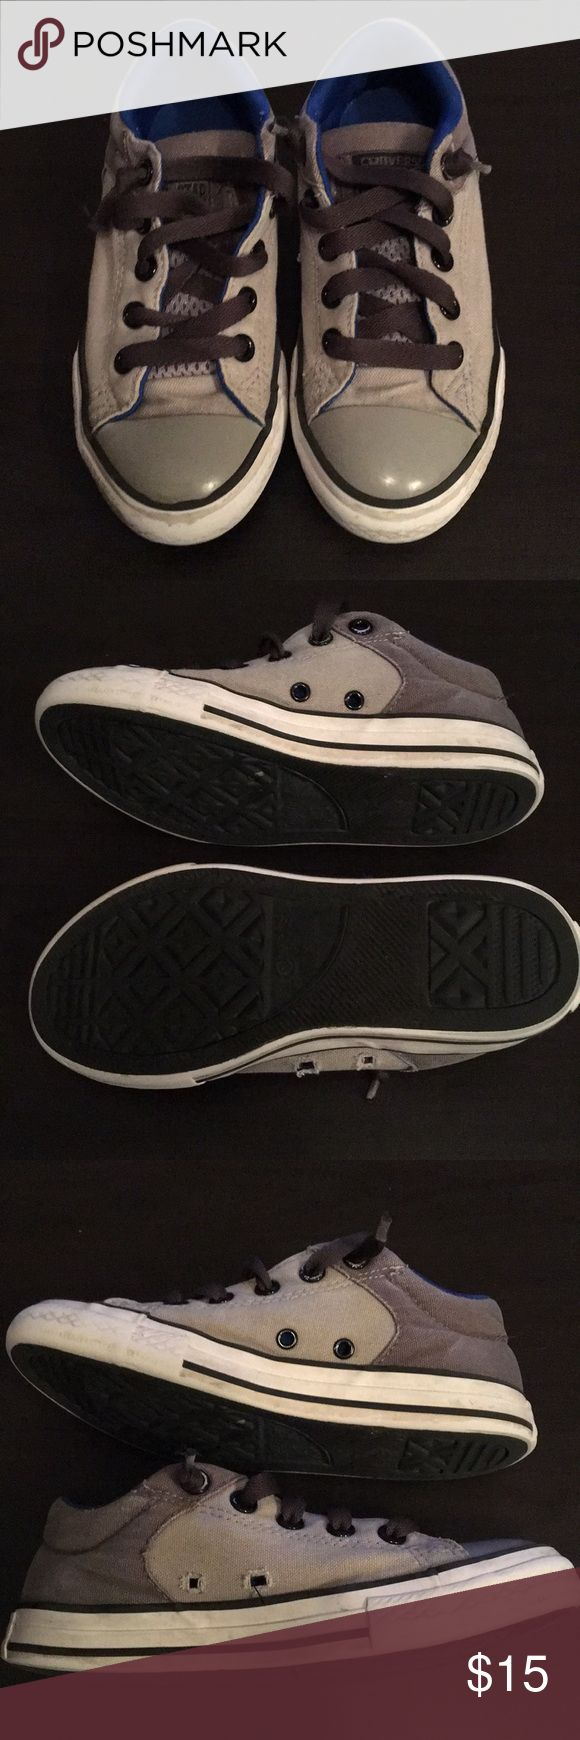 Kids Converse All ⭐️ Star Two tone gray with blue inner lining. Gently worn a few times. Left shoe is lacking the inner black rings? Not sure how or when that happened, but there's no damage otherwise. Tongue has elastic & is attached to avoid sliding forward. Laces are in good condition aside from the tips. Could be easily replaced. Priced per condition, bundle for a discount or make me an offer.😉 Clean and smoke free home! Converse Shoes Sneakers